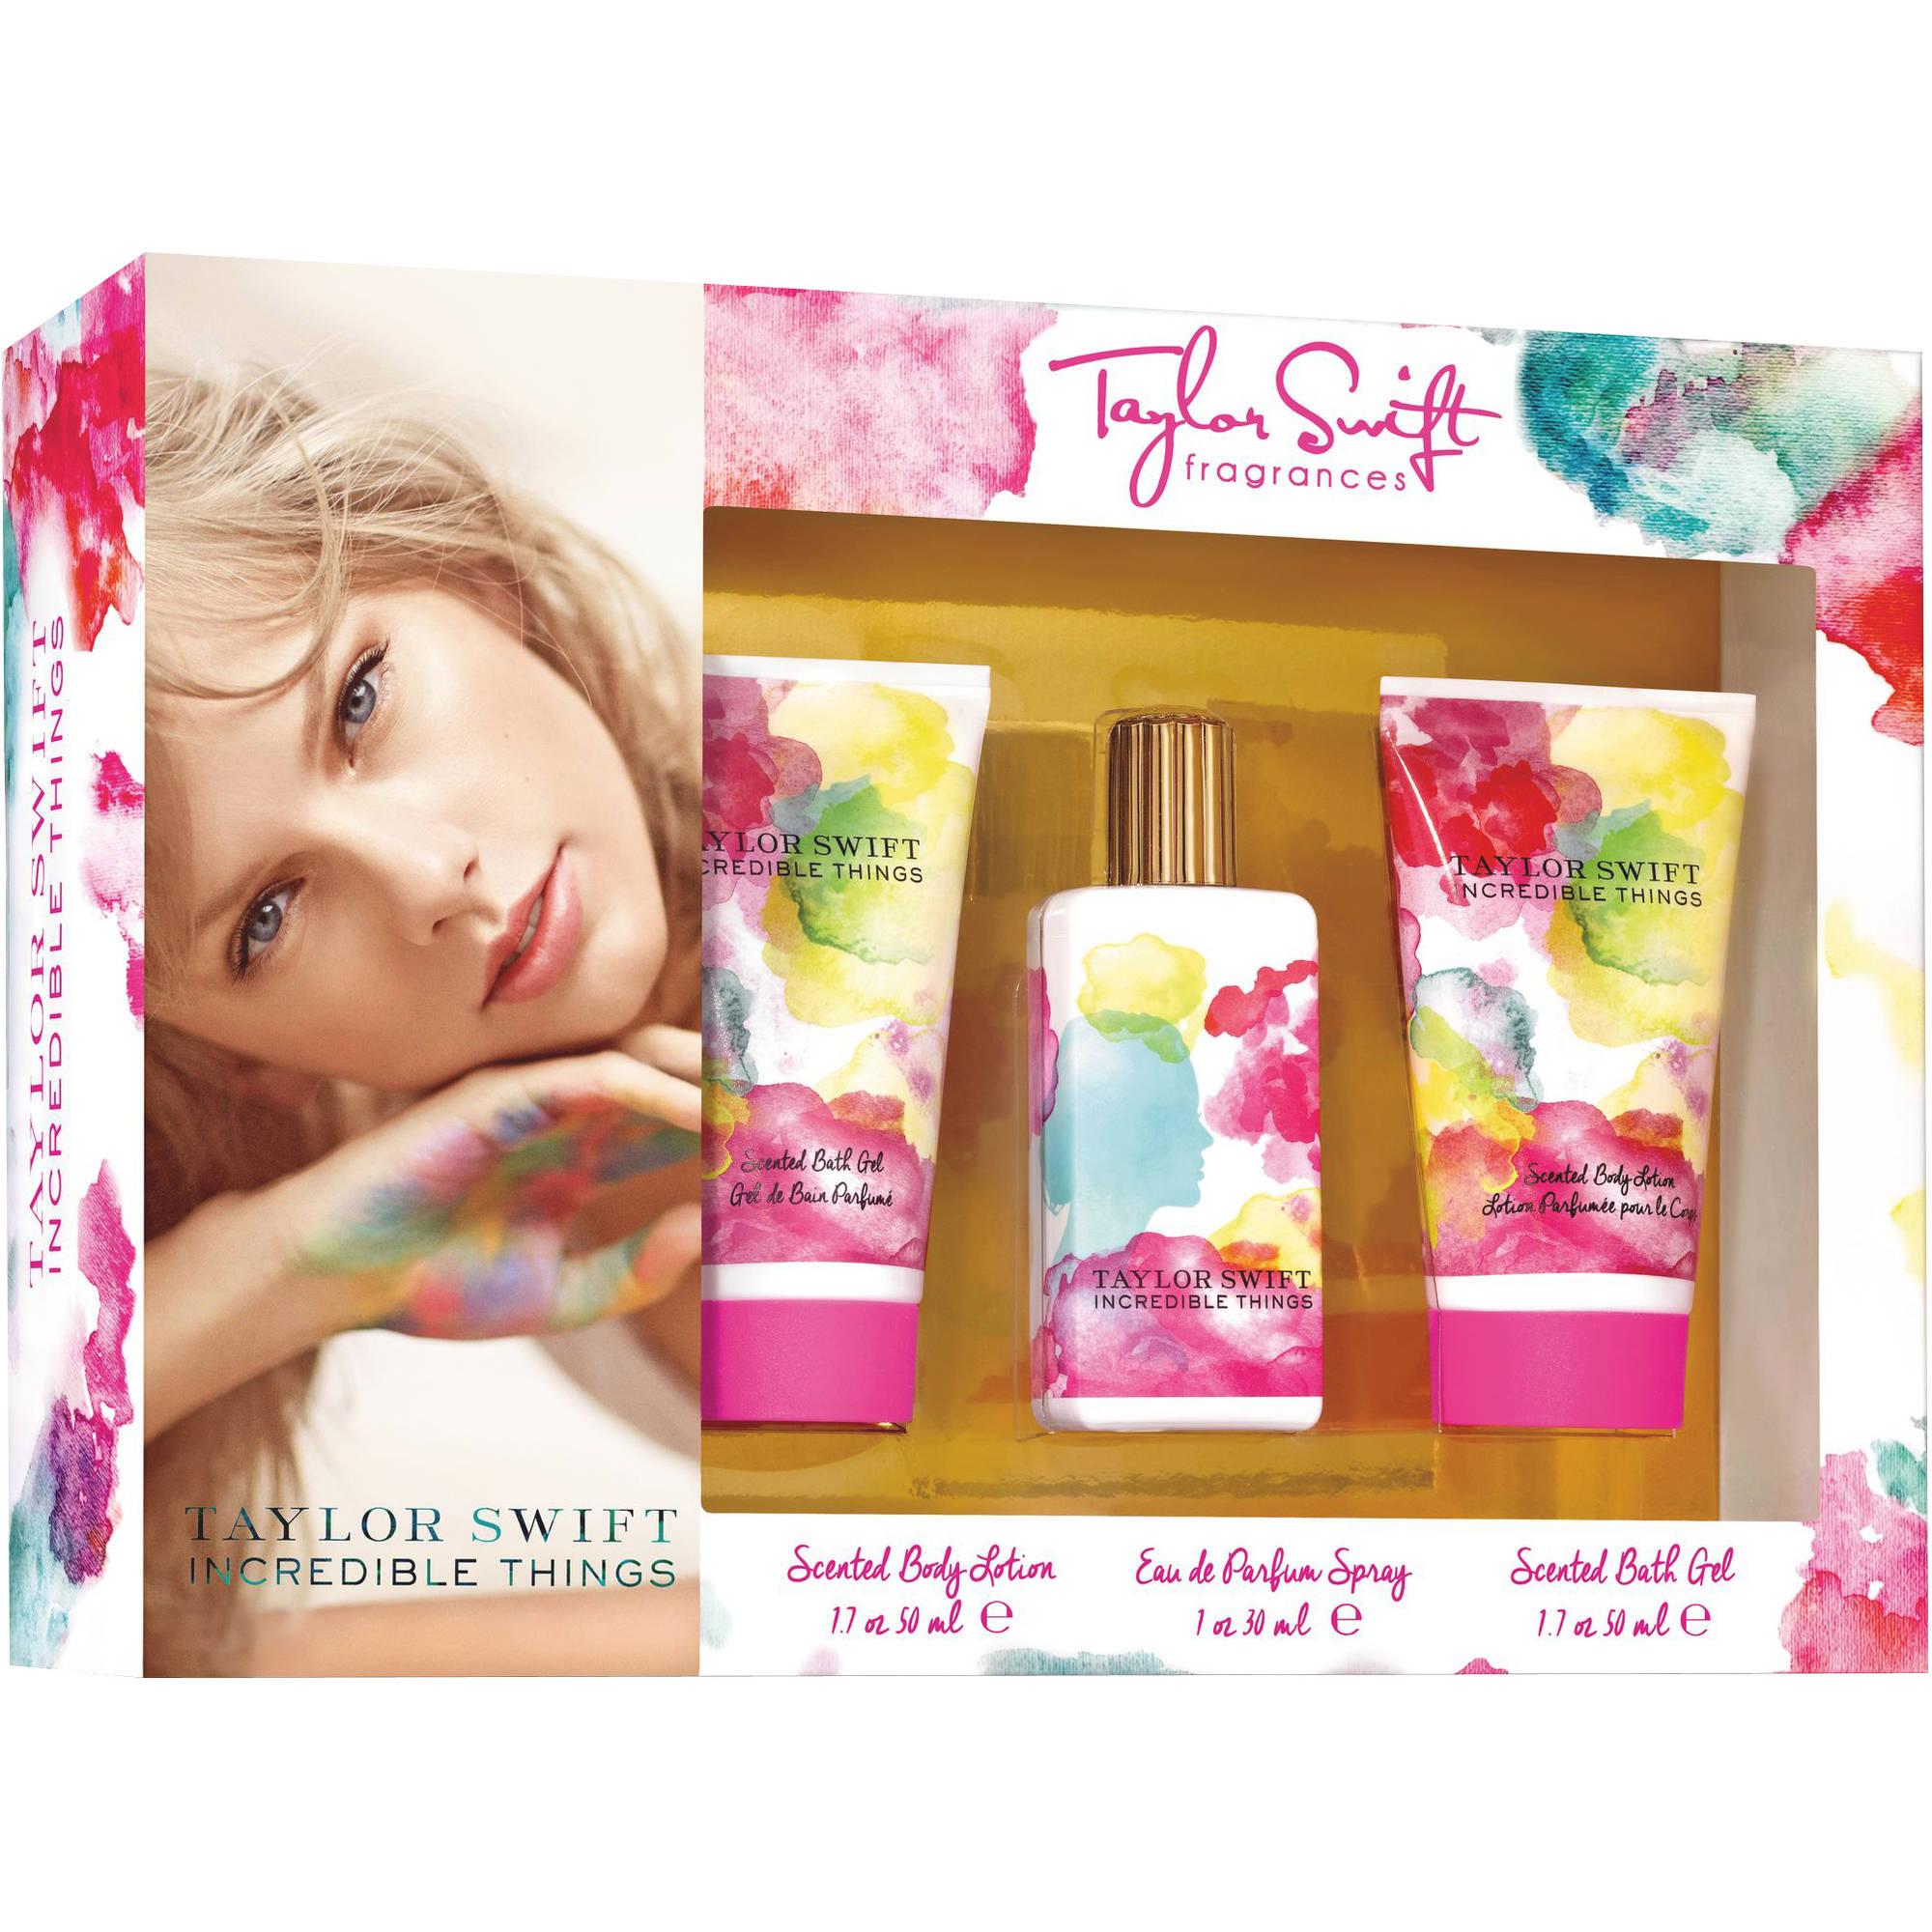 Taylor Swift Incredible Things Fragrance Gift Set 3 Pc Walmart Com Walmart Com